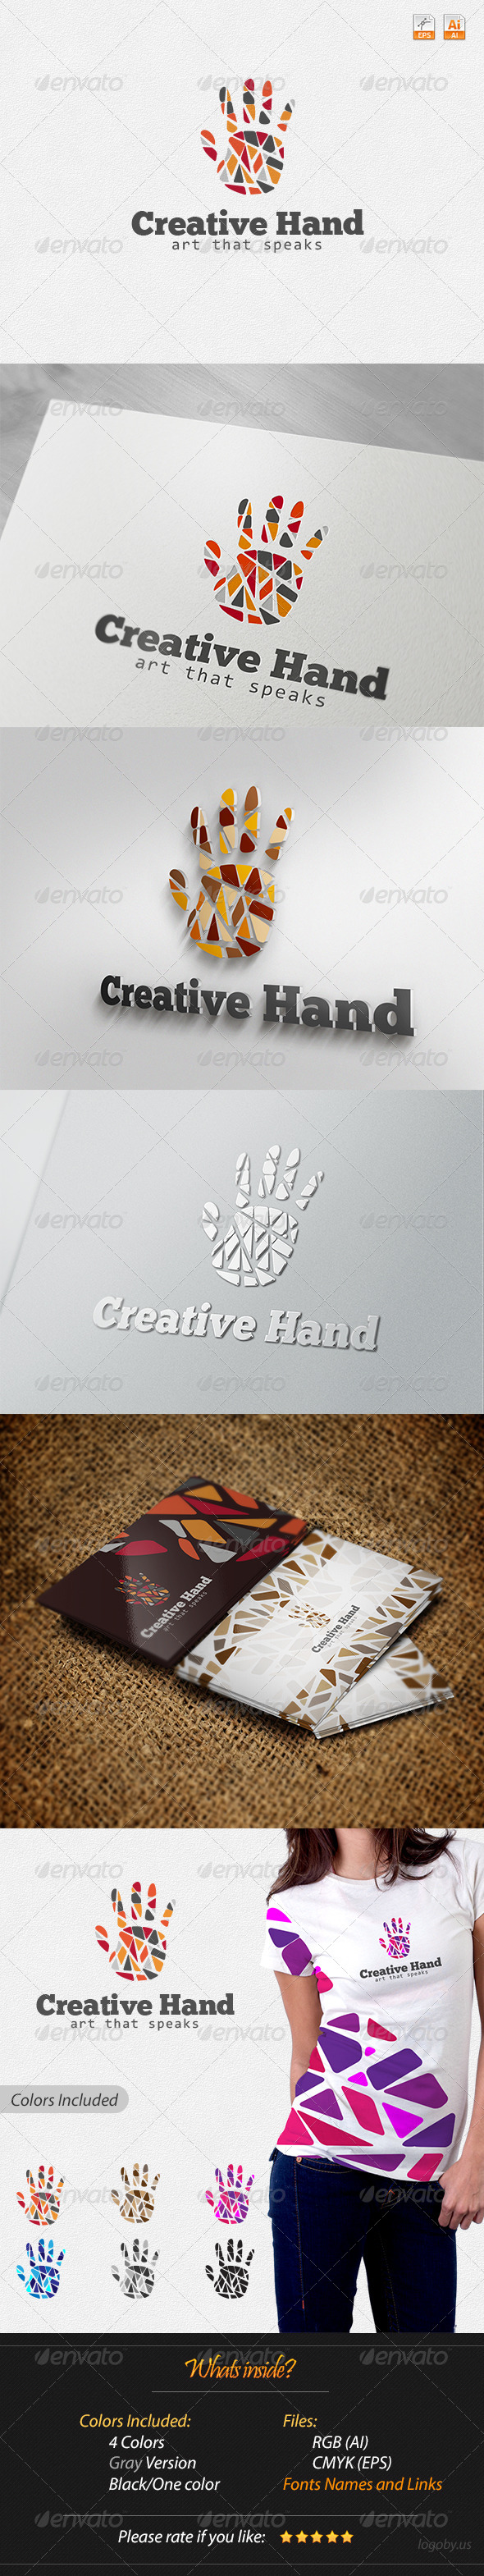 Creative Hand Art that Speaks Logo